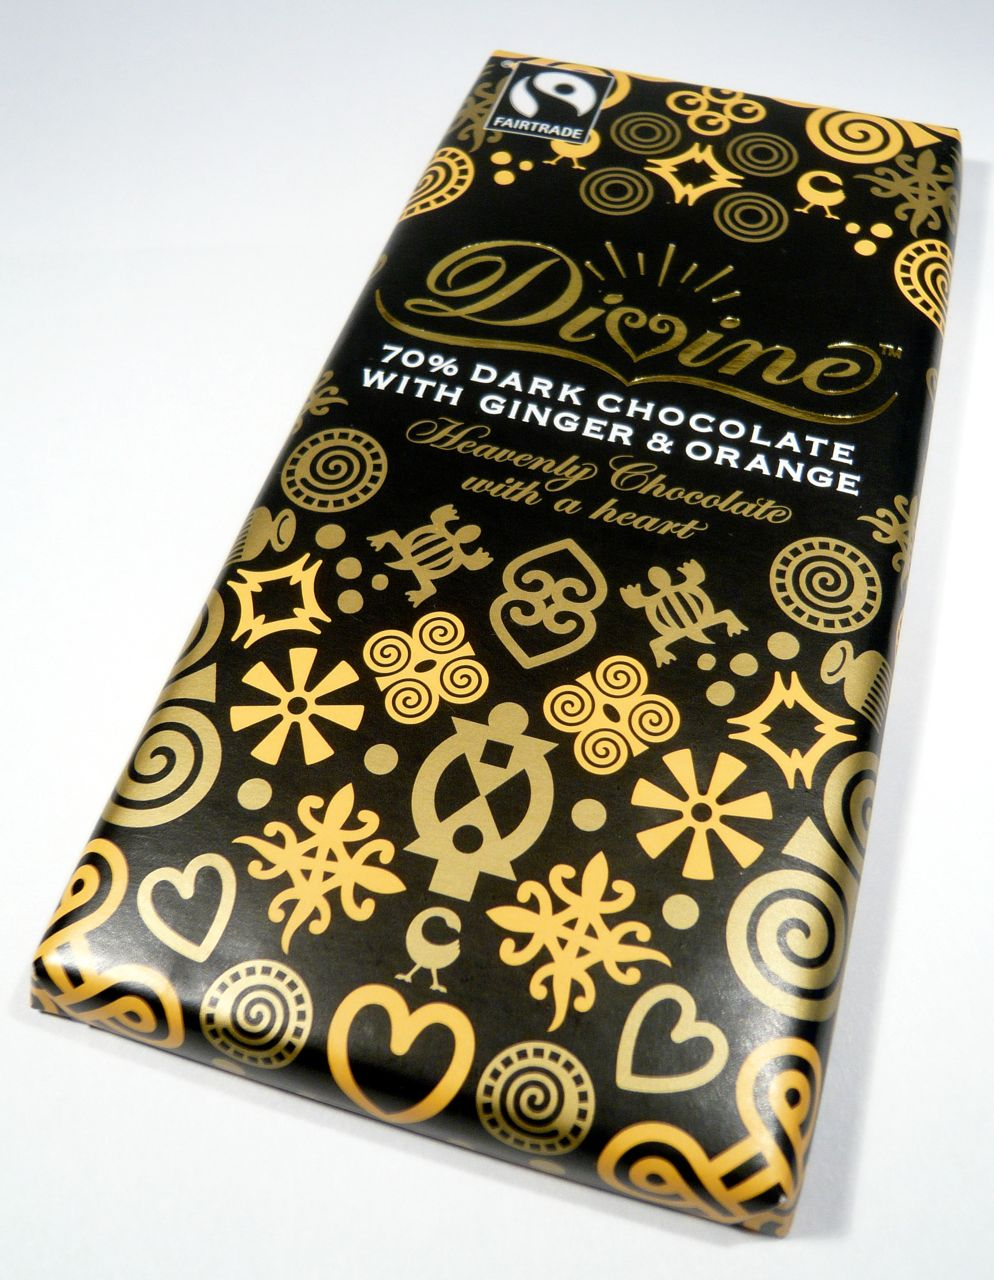 Divine Dark Chocolate With Ginger & Orange Review